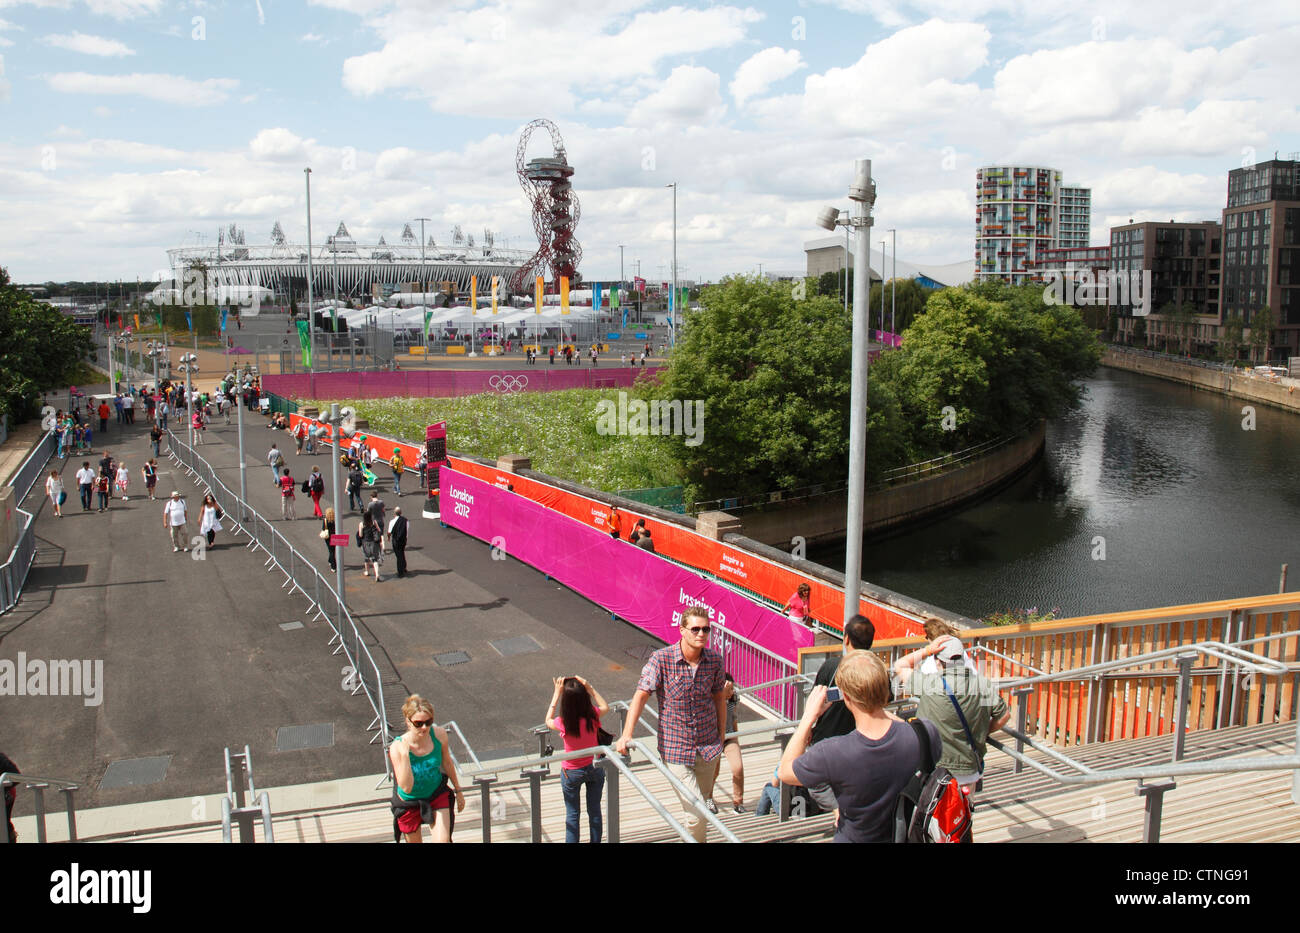 The London 2012 Olympic Village at Stratford, London, England, U.K. - Stock Image